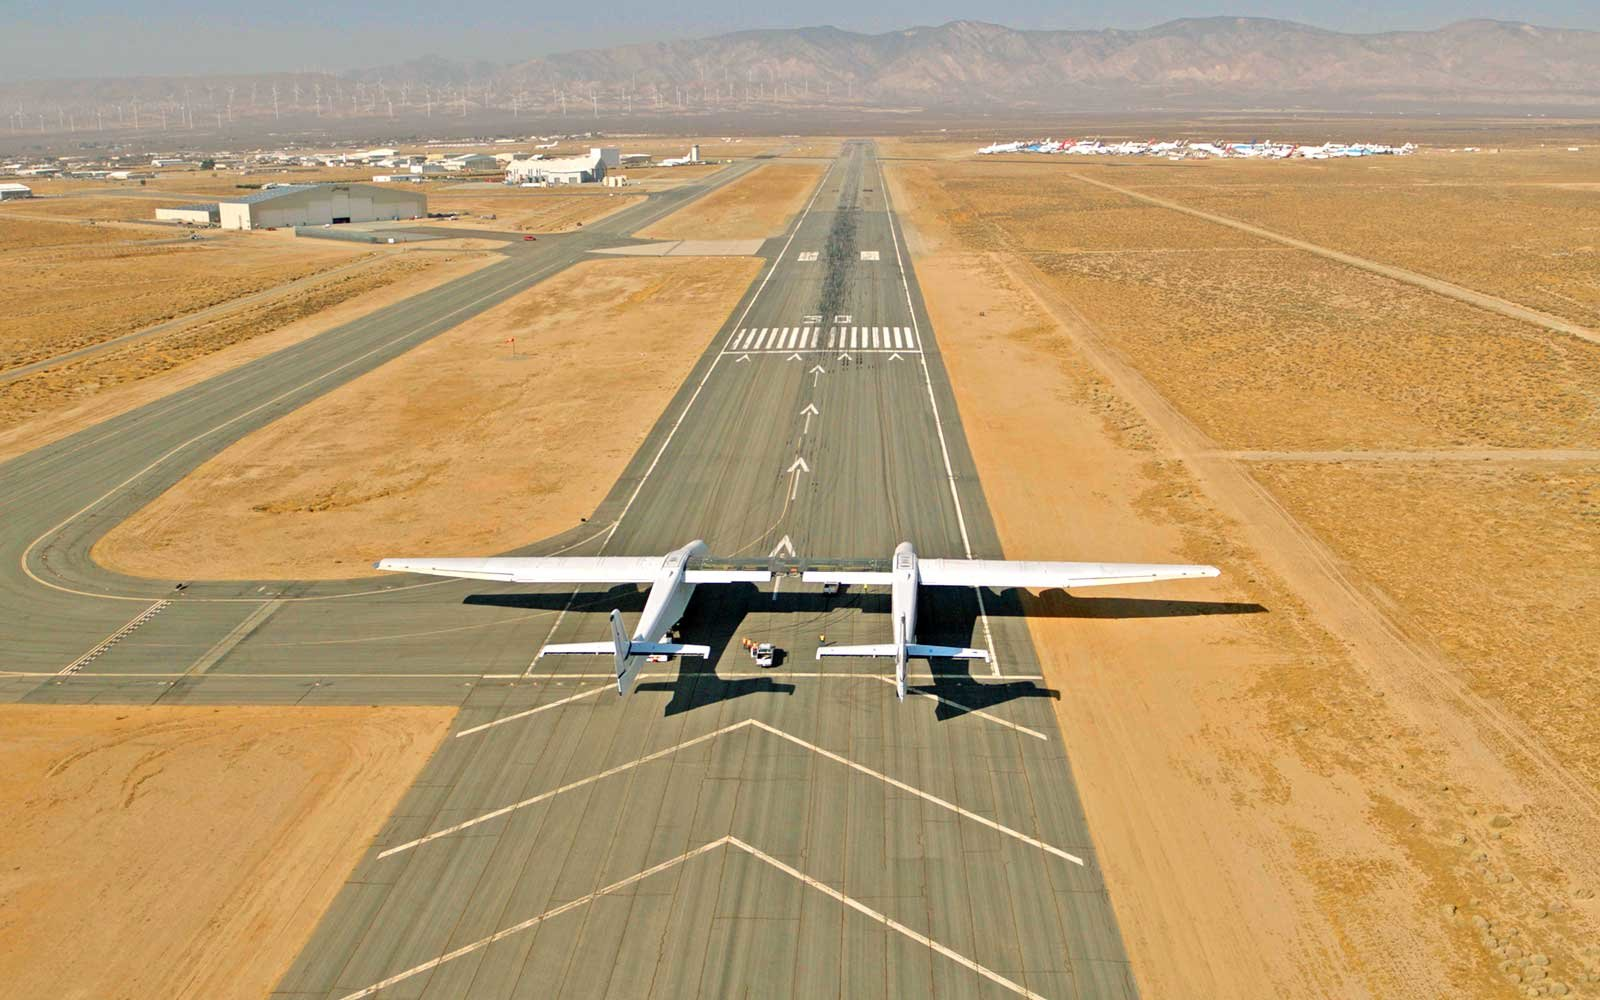 Stratolaunch airplane - world's largest